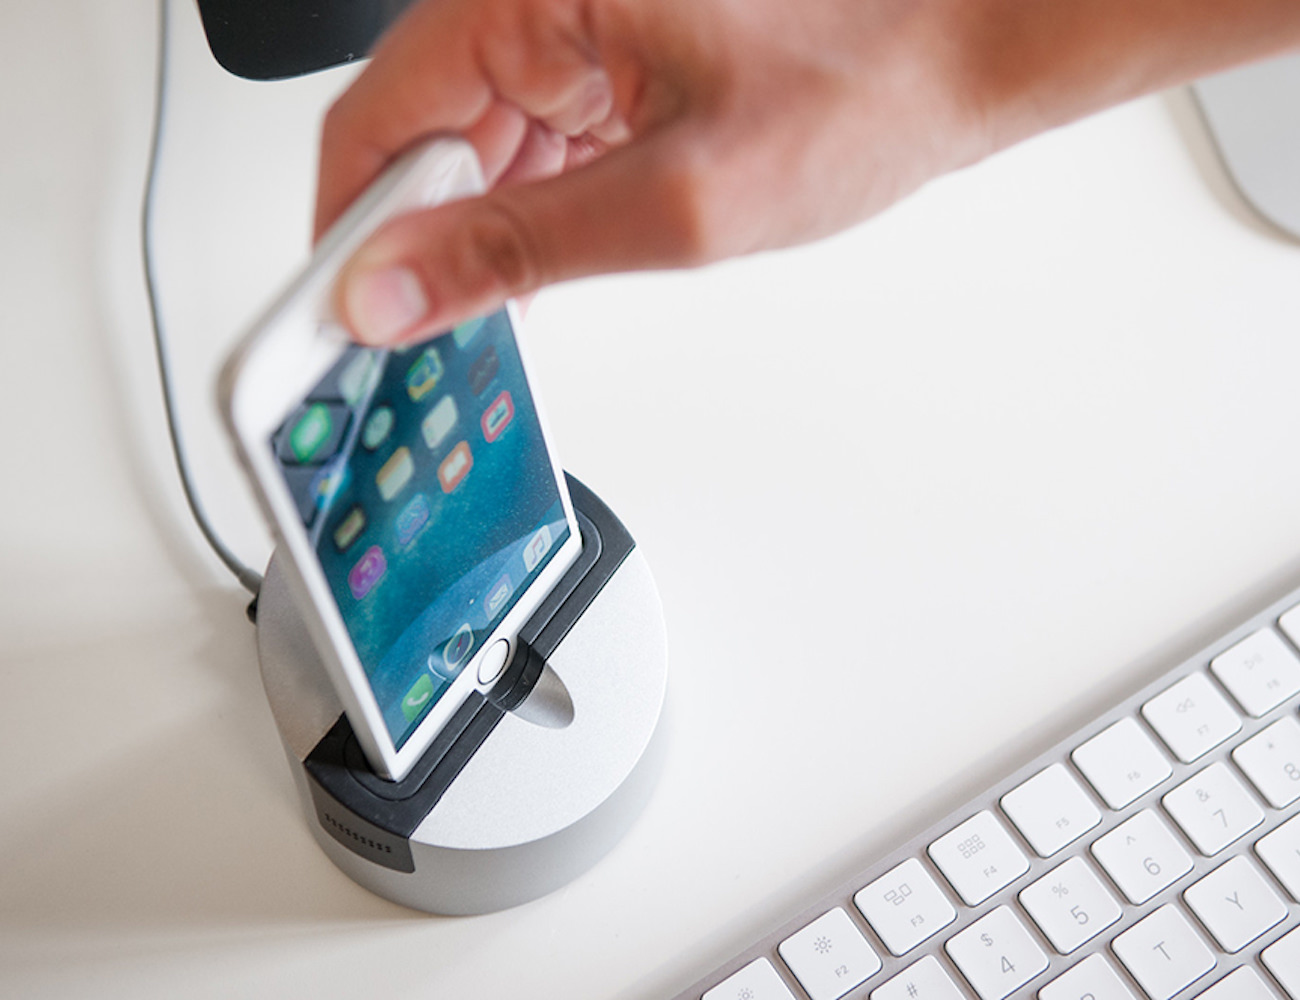 Gravitas2 iPhone and iPad Dock by Henge Docks